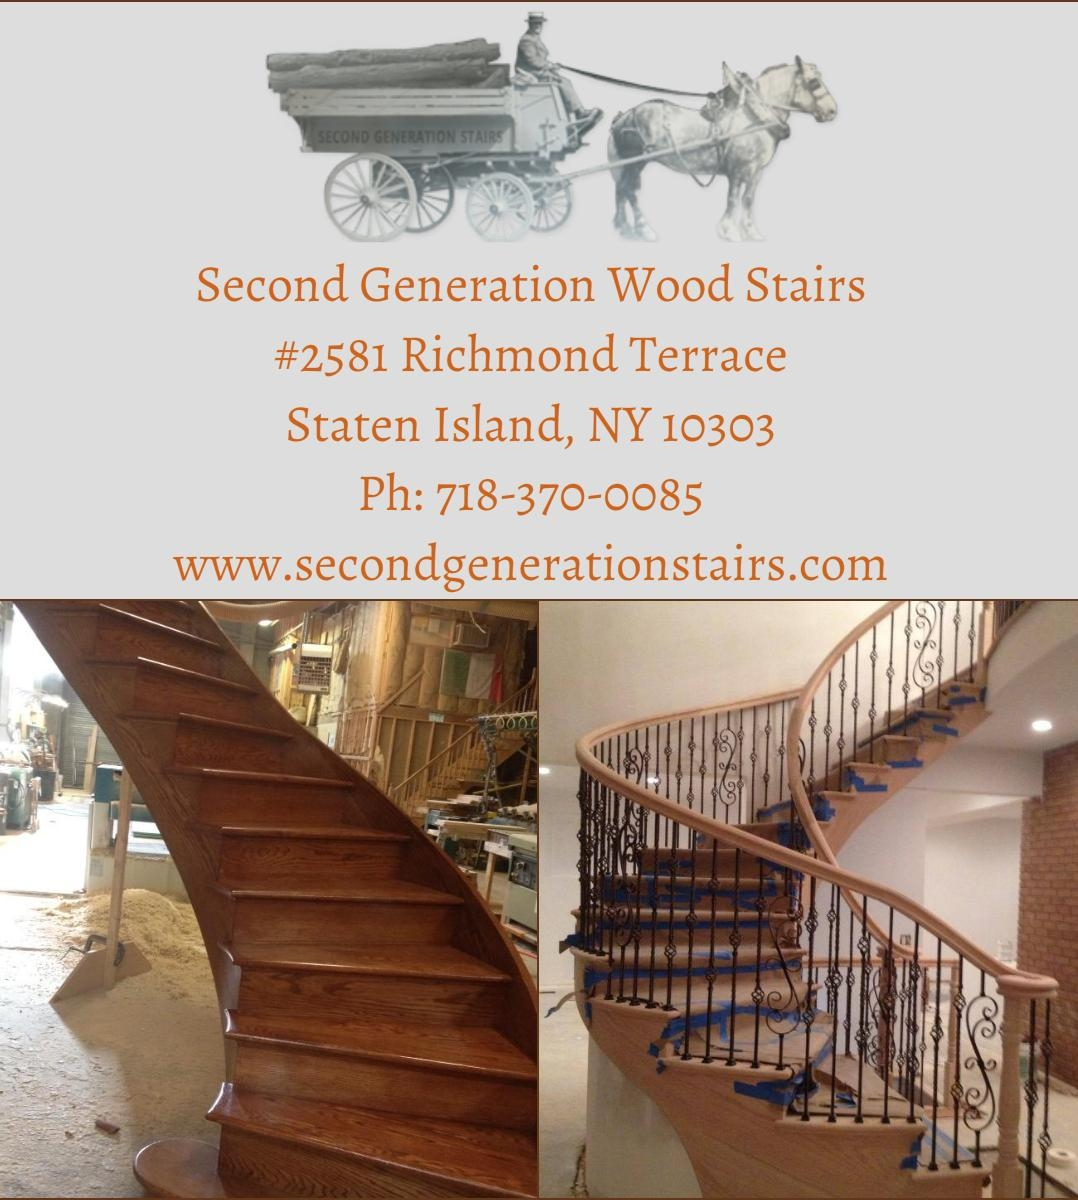 Second Gen Stairs On Twitter Curved Stairs – The Curving Point   Second Generation Wood Stairs   Railing   Presentation Transcript   Powerpoint Presentation   Interior Stair   Railing Systems